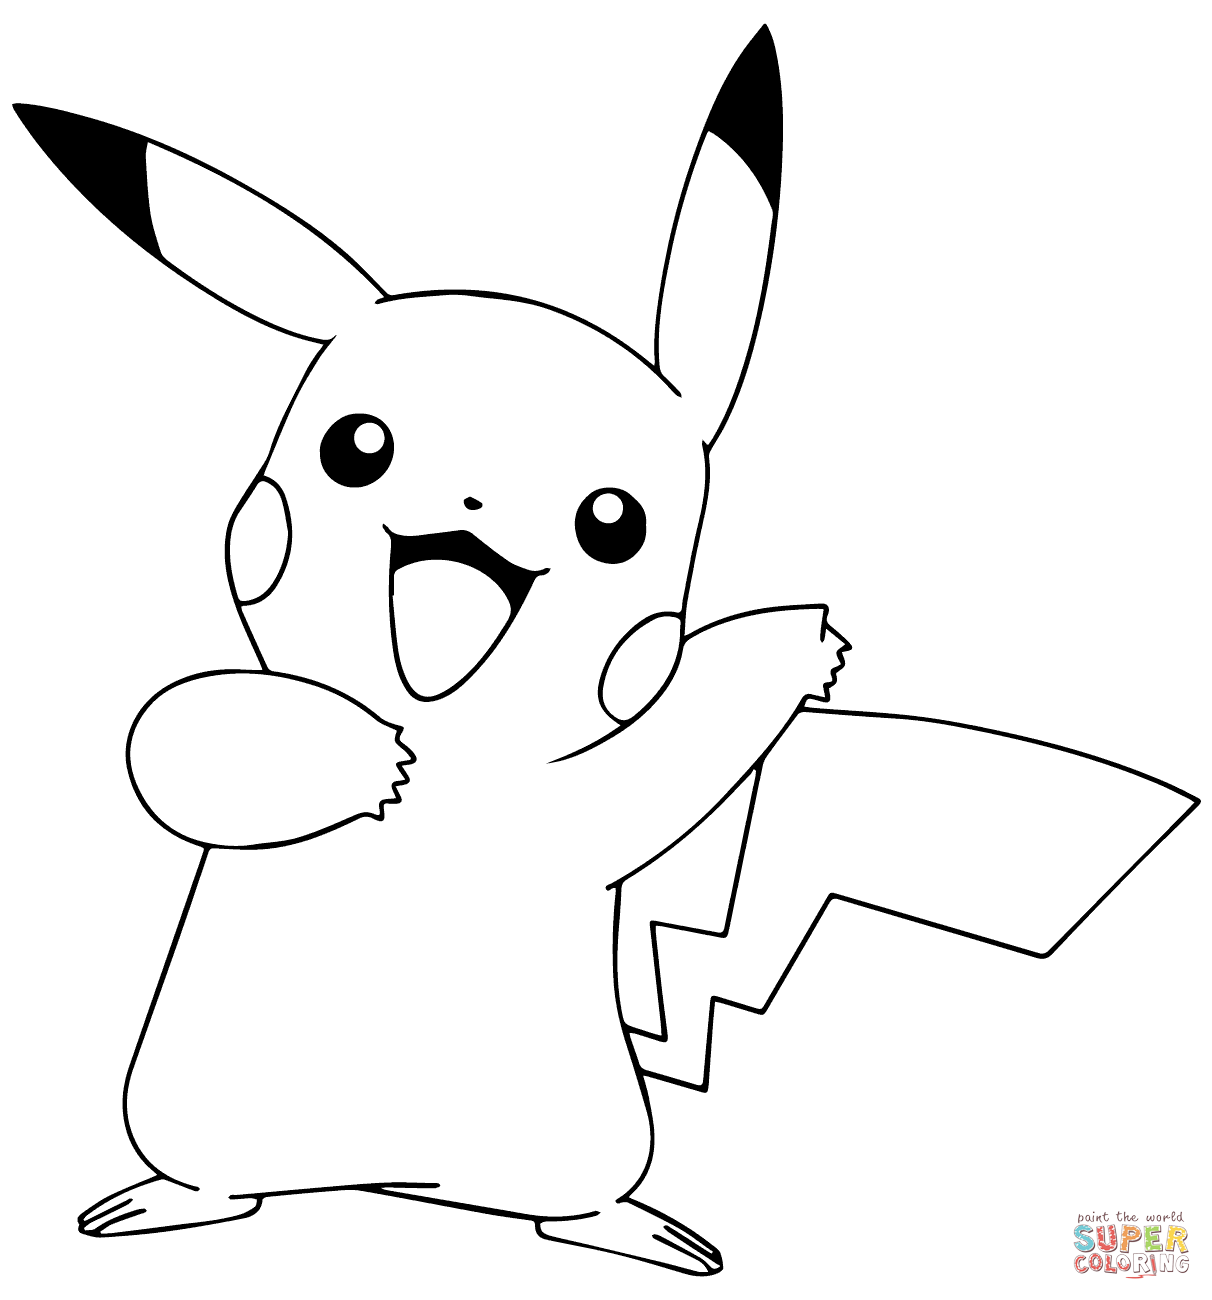 pikachu drawing coloring pages pikachu drawing step by step easy free download on pages coloring drawing pikachu